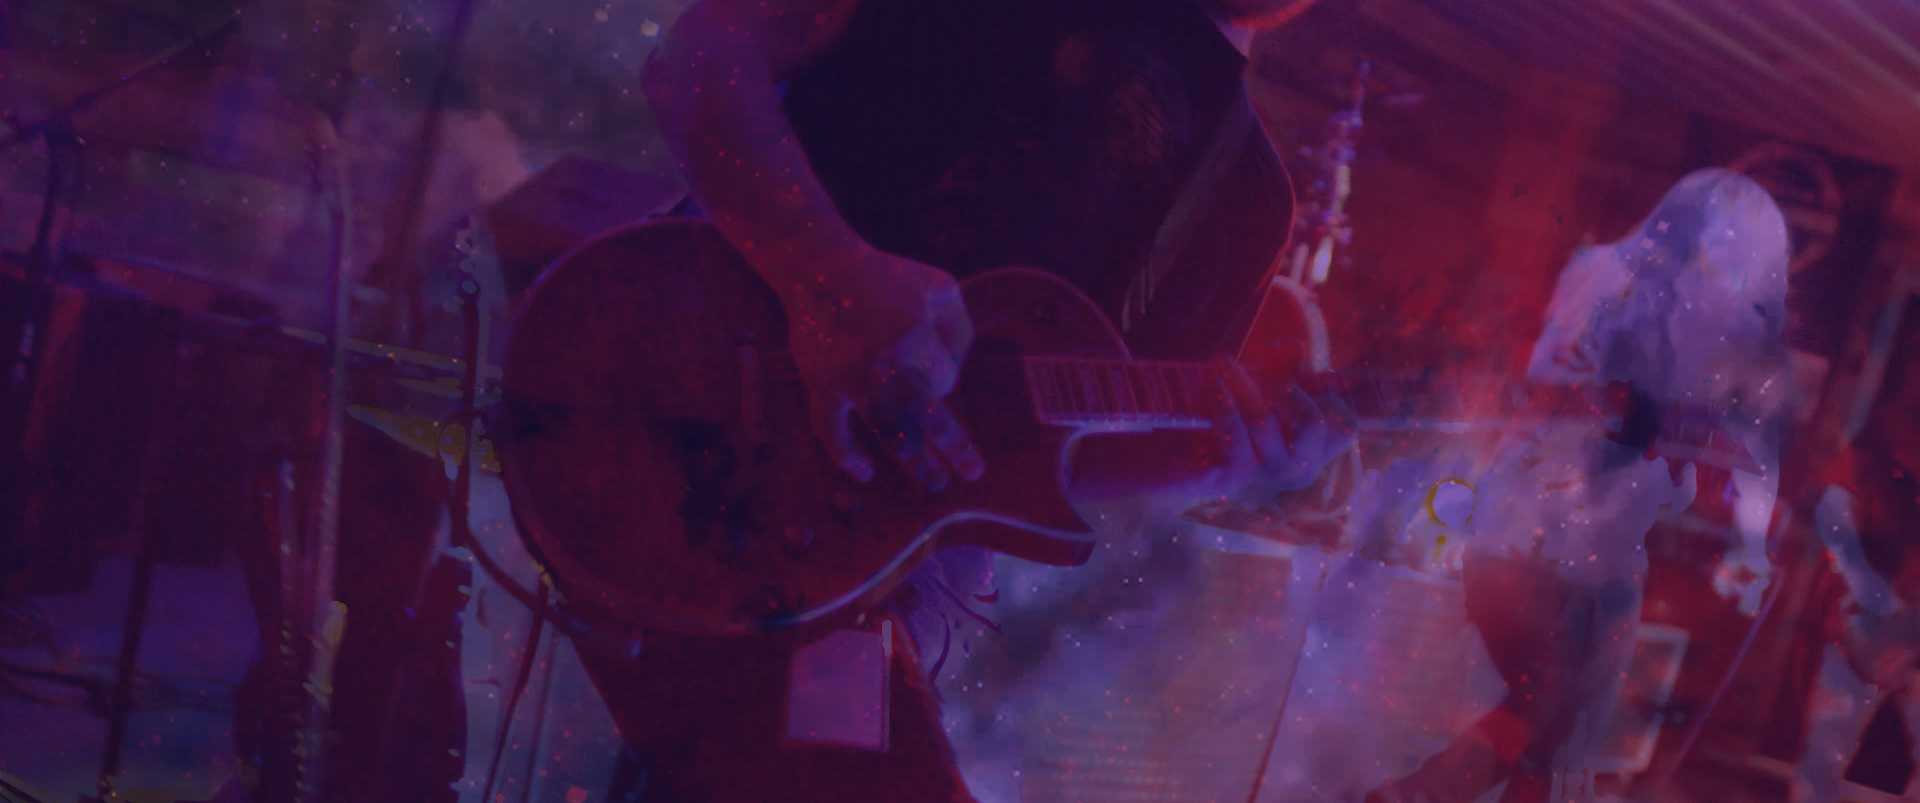 YEARS - Live Performance Film REV 2.00_02_46_17.Still005.png